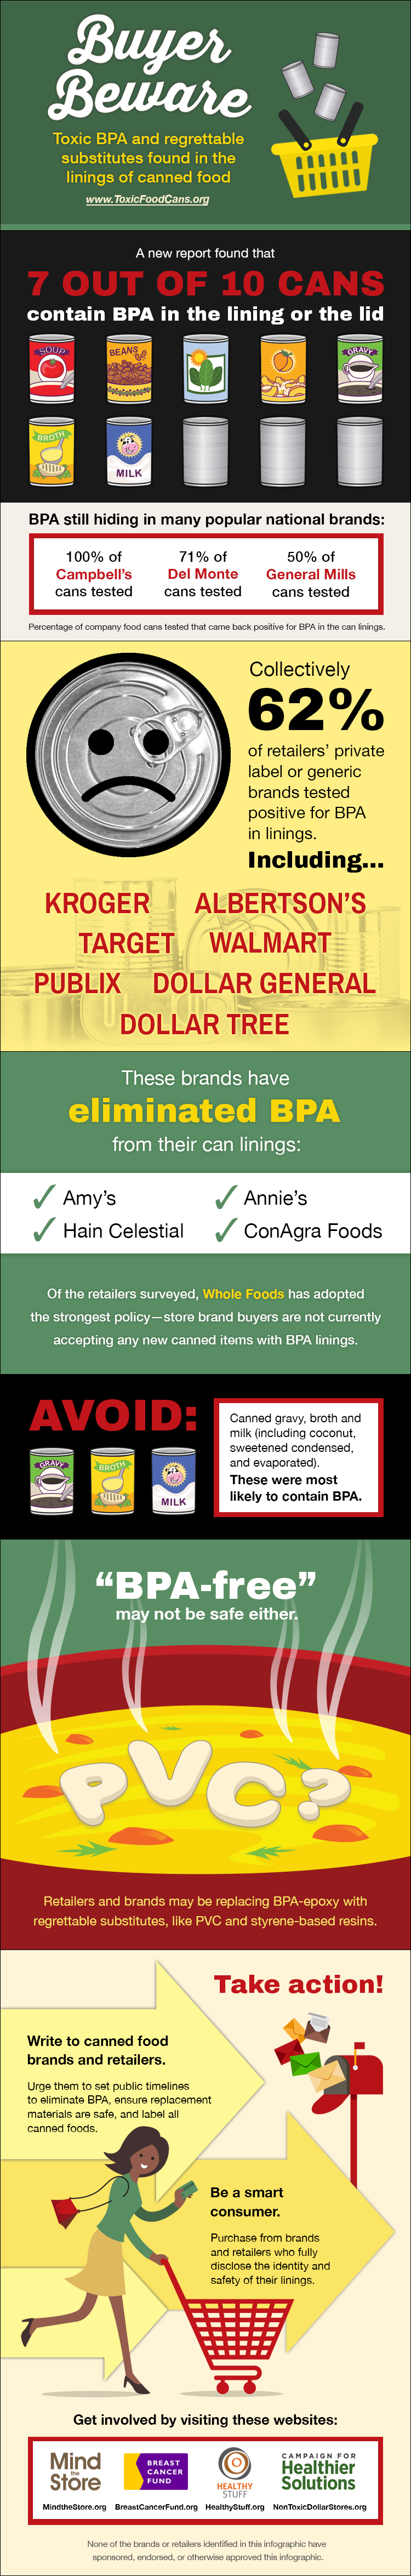 Beware: Toxic BPA is Probably Lurking in Your Food